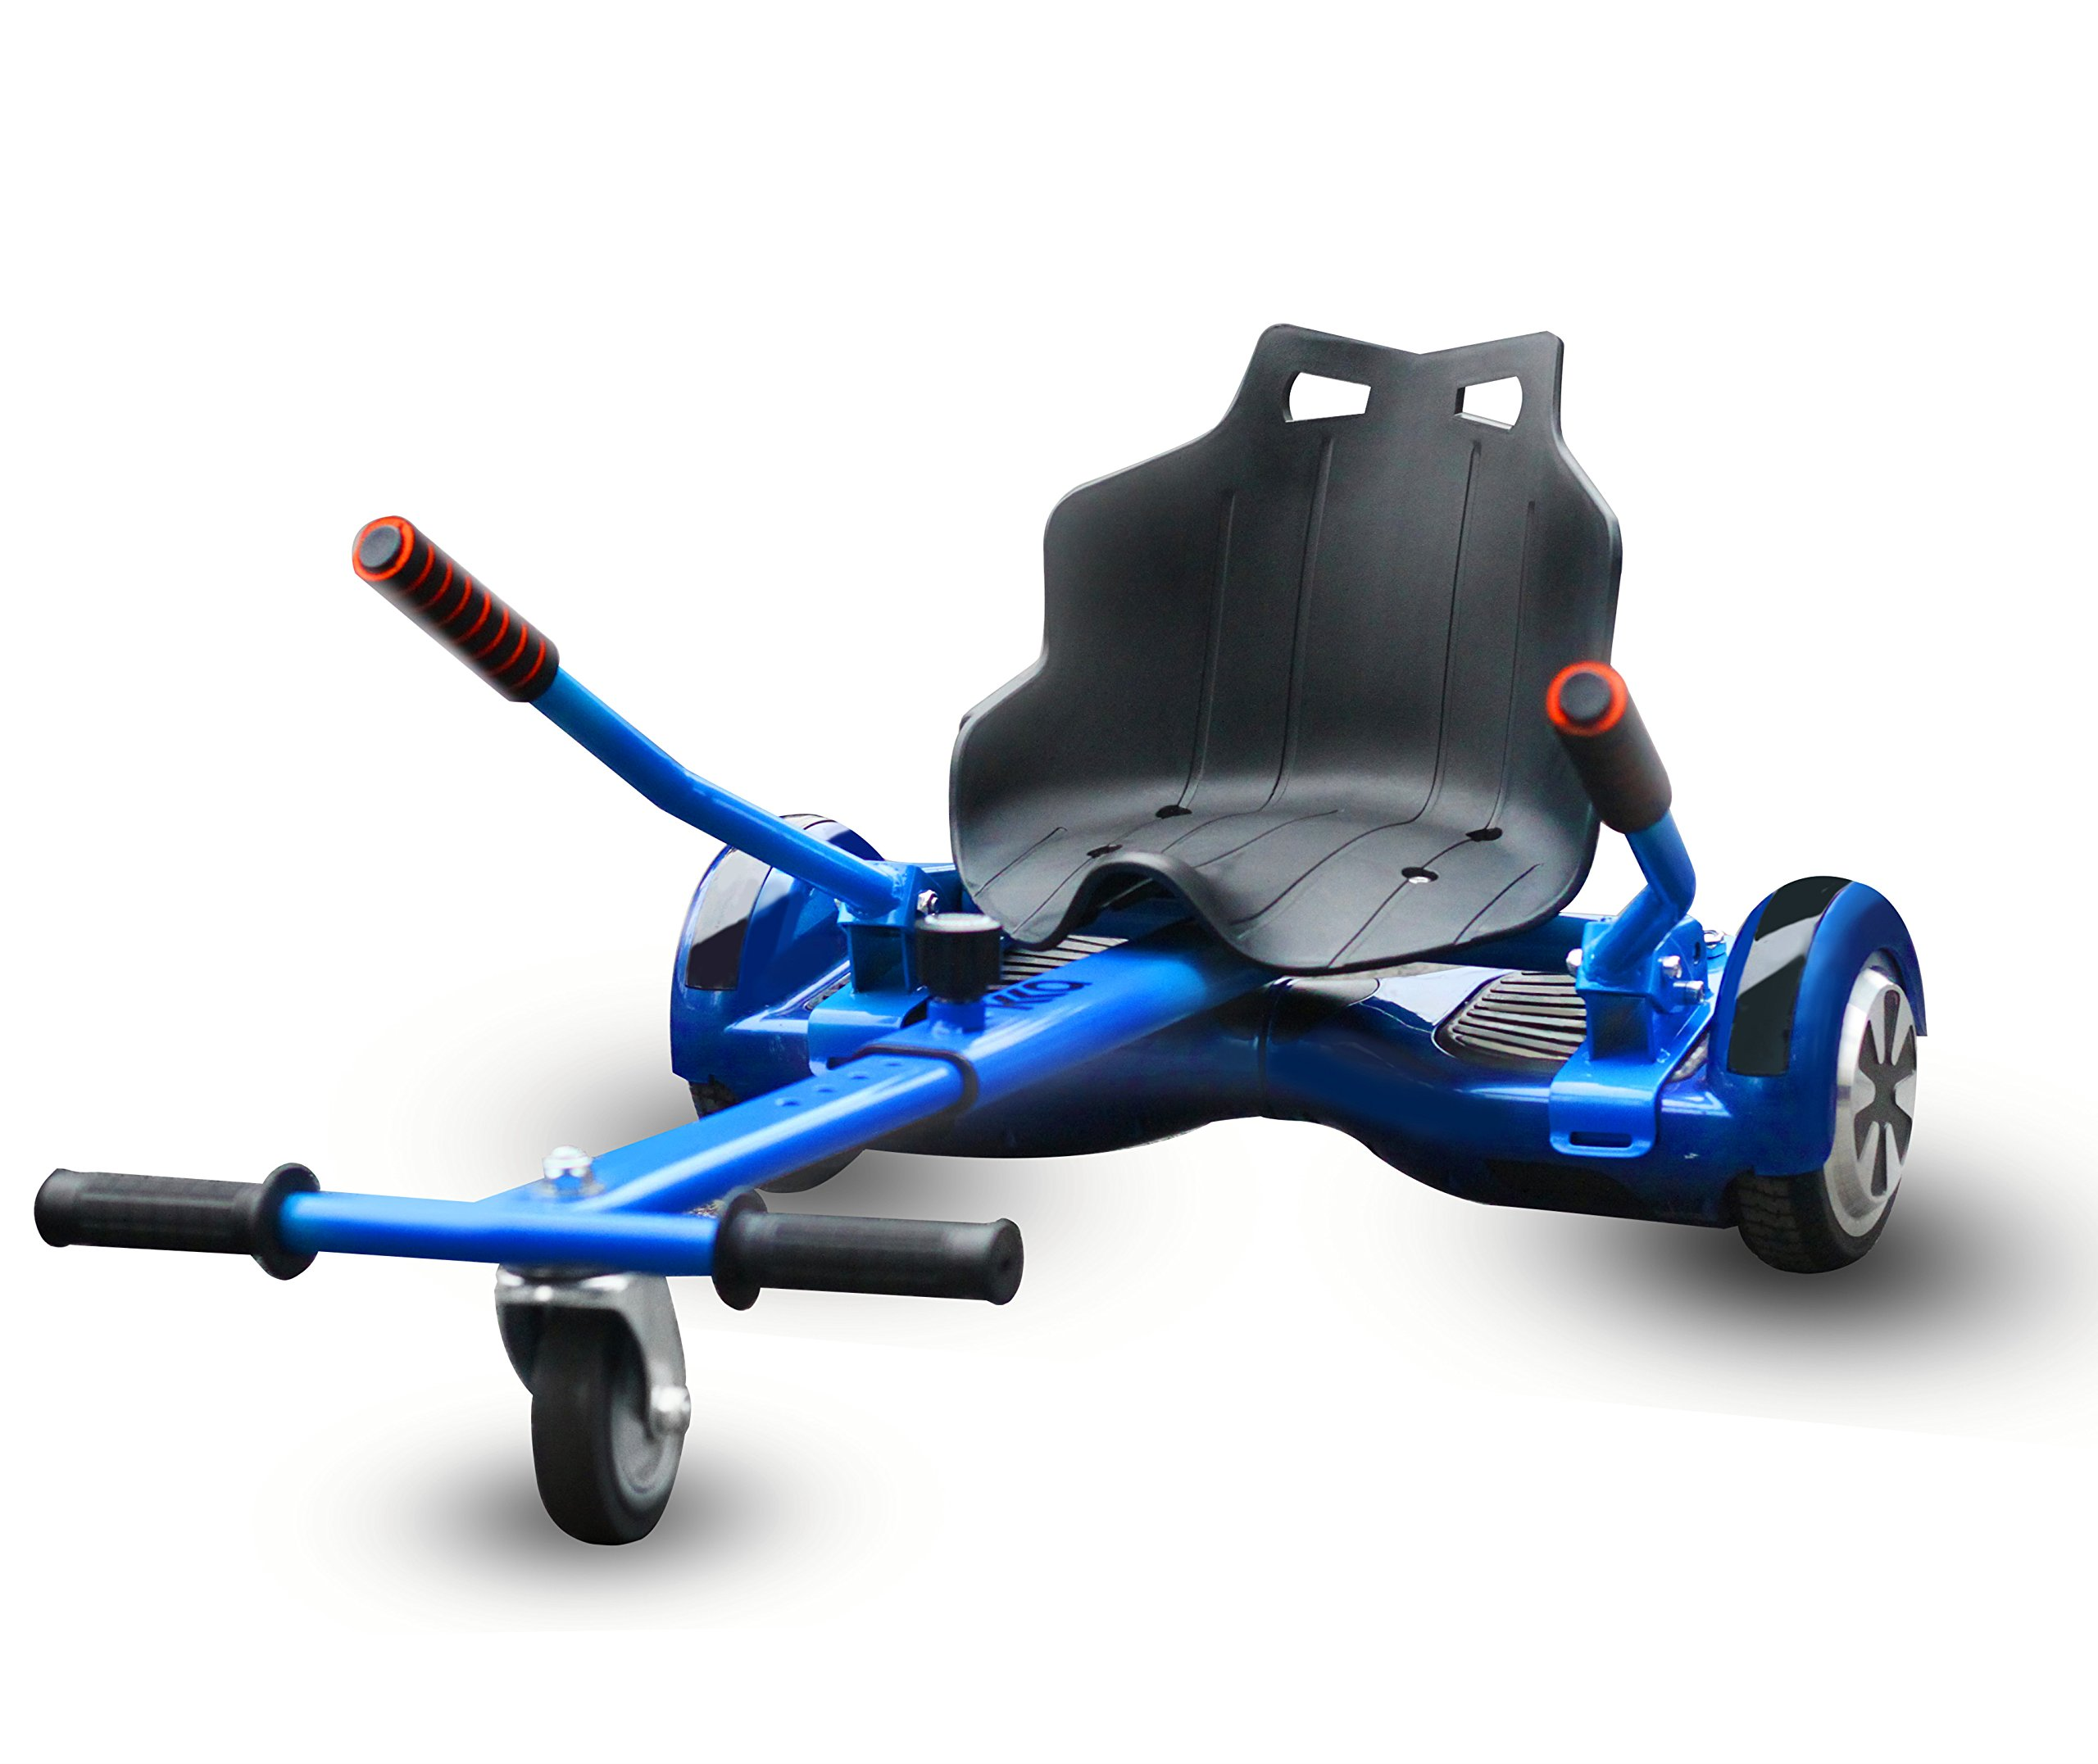 Hoverboard Hover Kart Fits all Sizes 6.5'', 8'', 10'' transform Hoverboard into Go-Kart, for Kid and Adult Heavy Duty Frame (Blue)